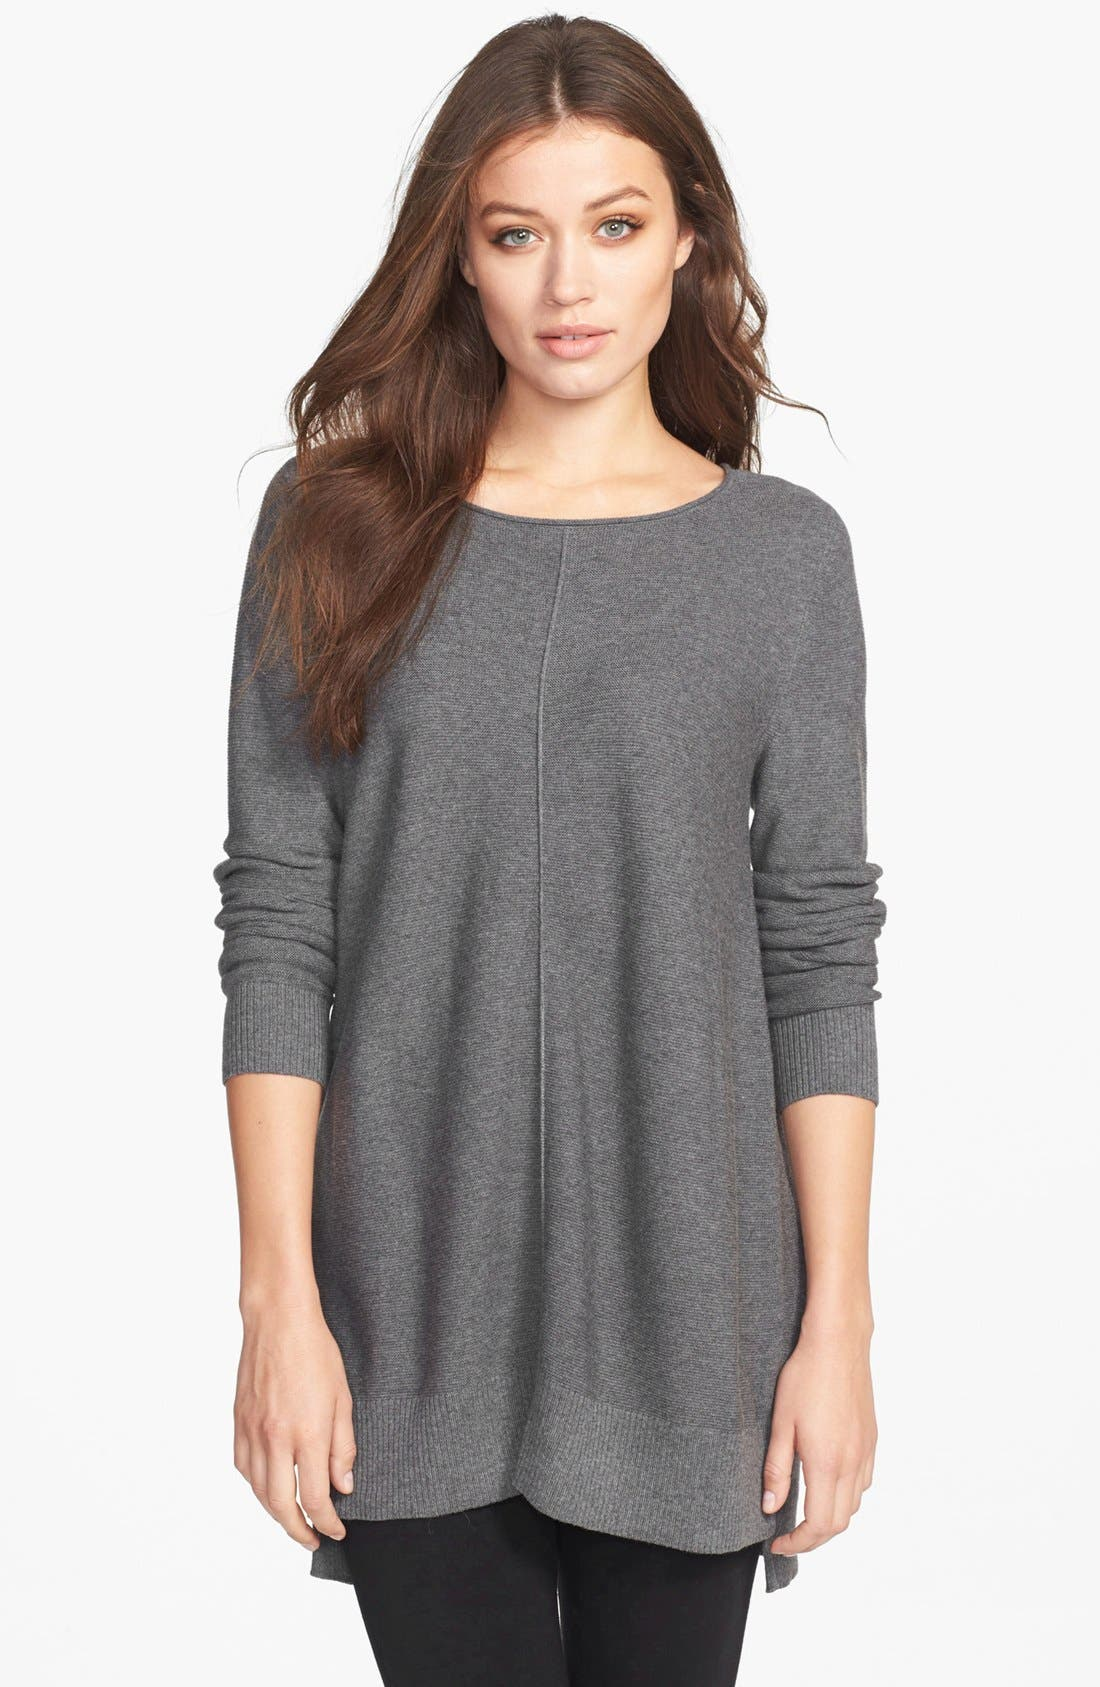 Alternate Image 1 Selected - Eileen Fisher Organic Cotton Bateau Neck Top